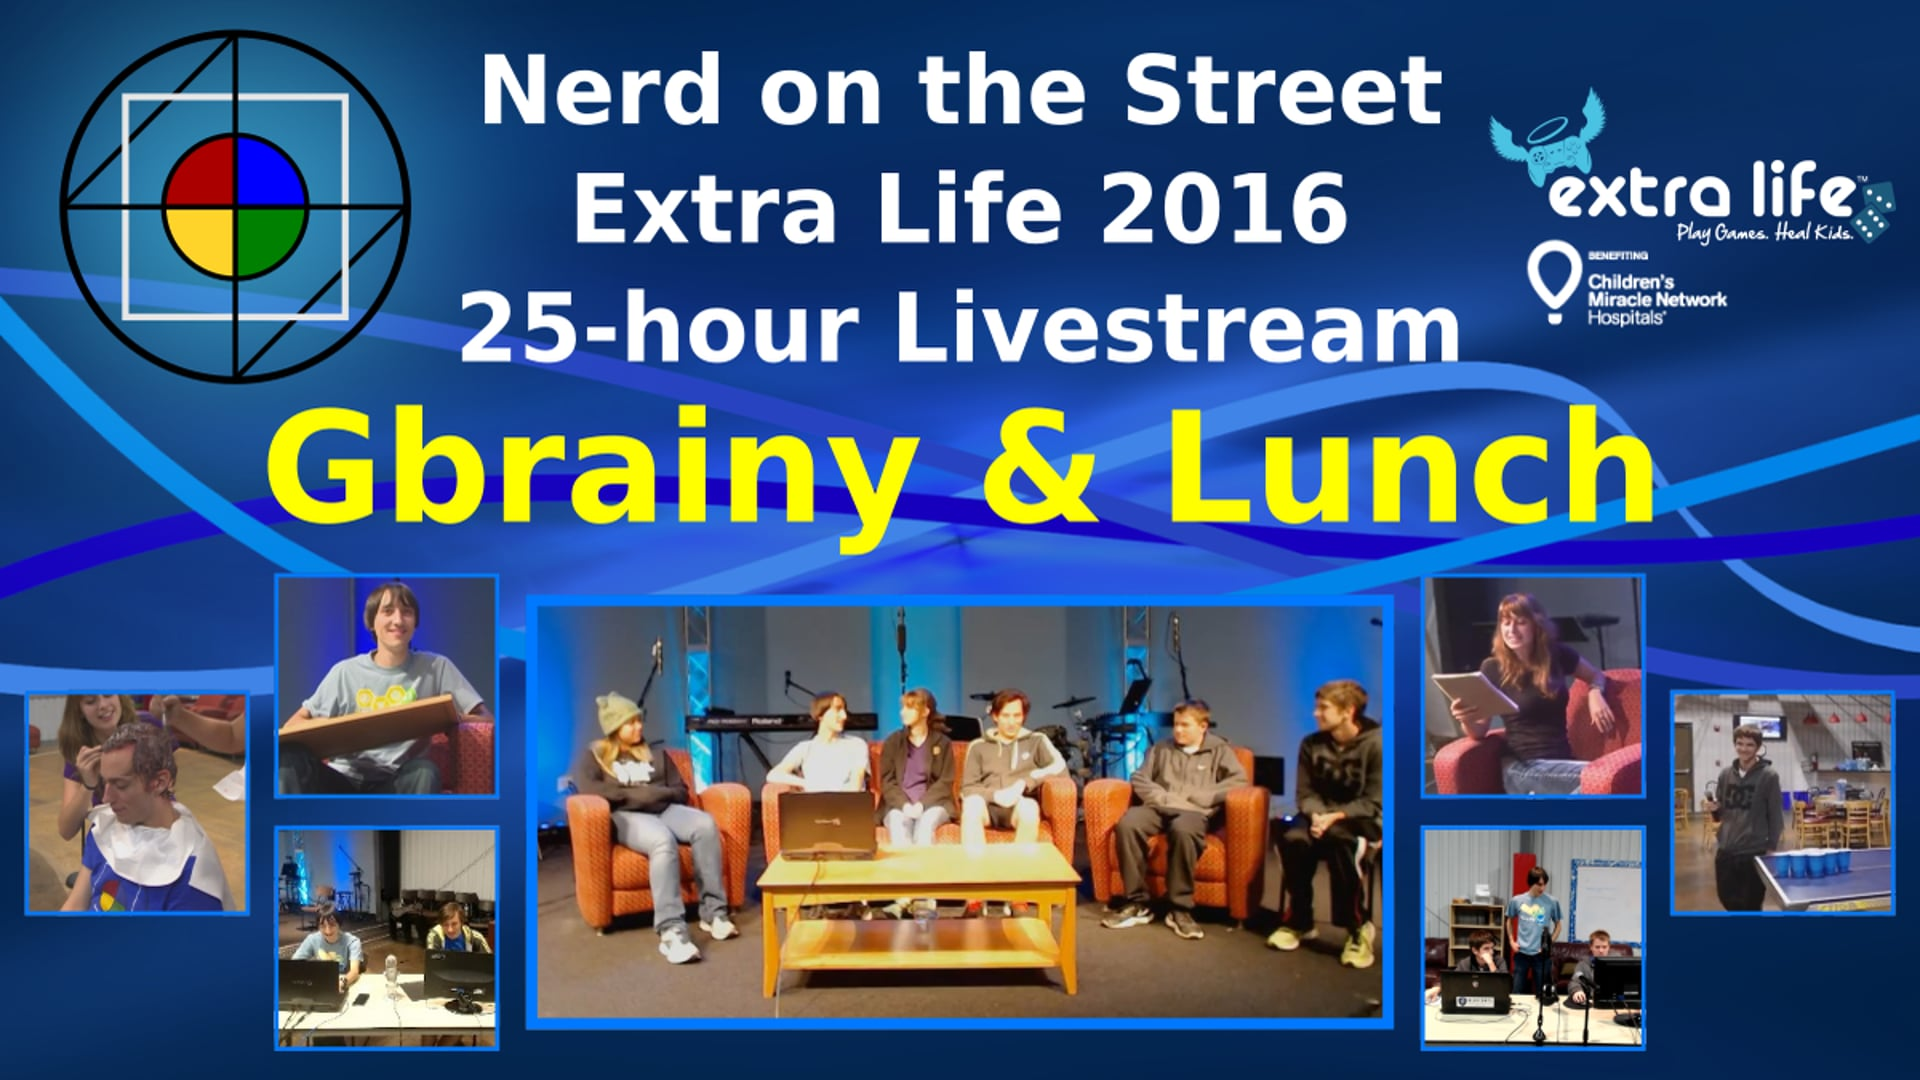 Gbrainy & Lunch - Extra Life 2016